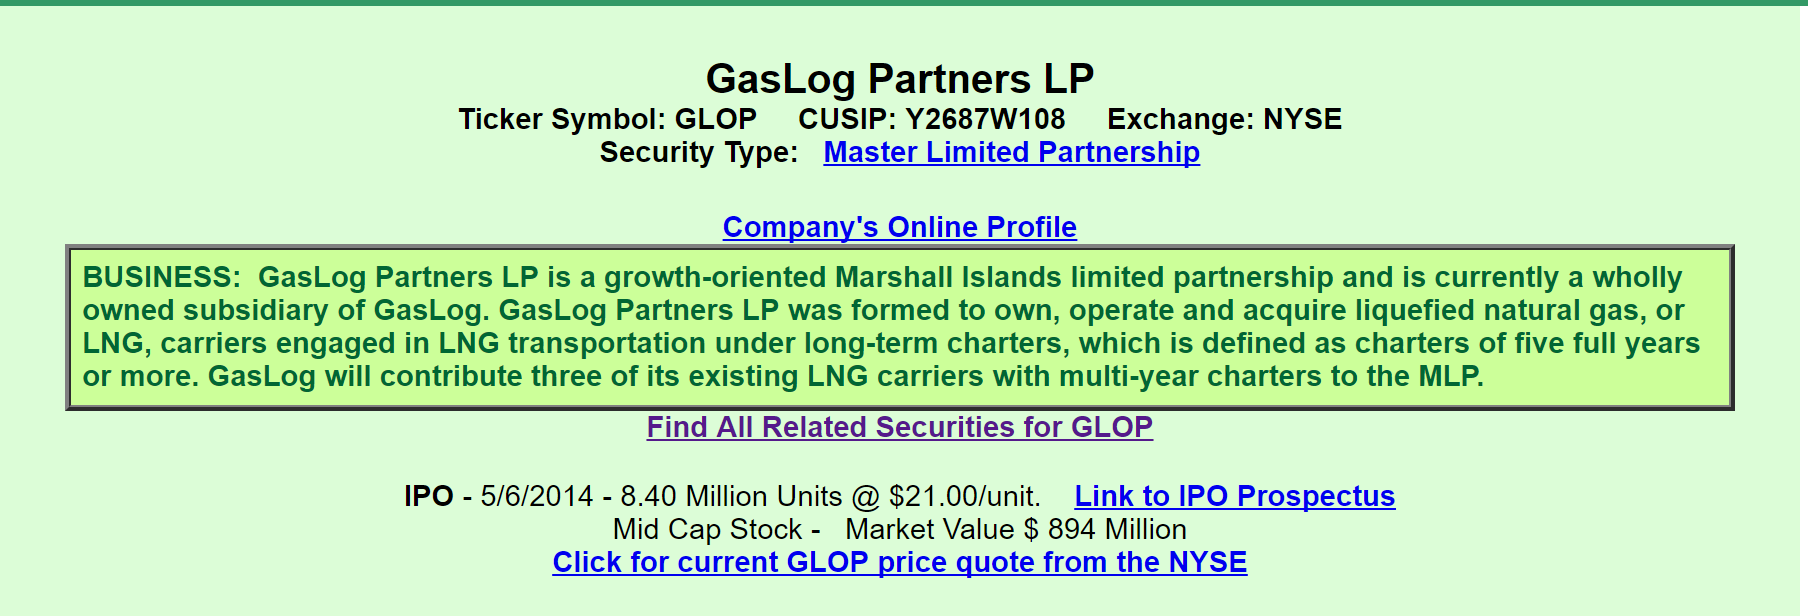 Gaslog partners from the perspective of a preferred investor here we learn that glop is a partnership that ipod 5614 and operates and acquires lng carriers for lng transportation under long term charters of 5 years biocorpaavc